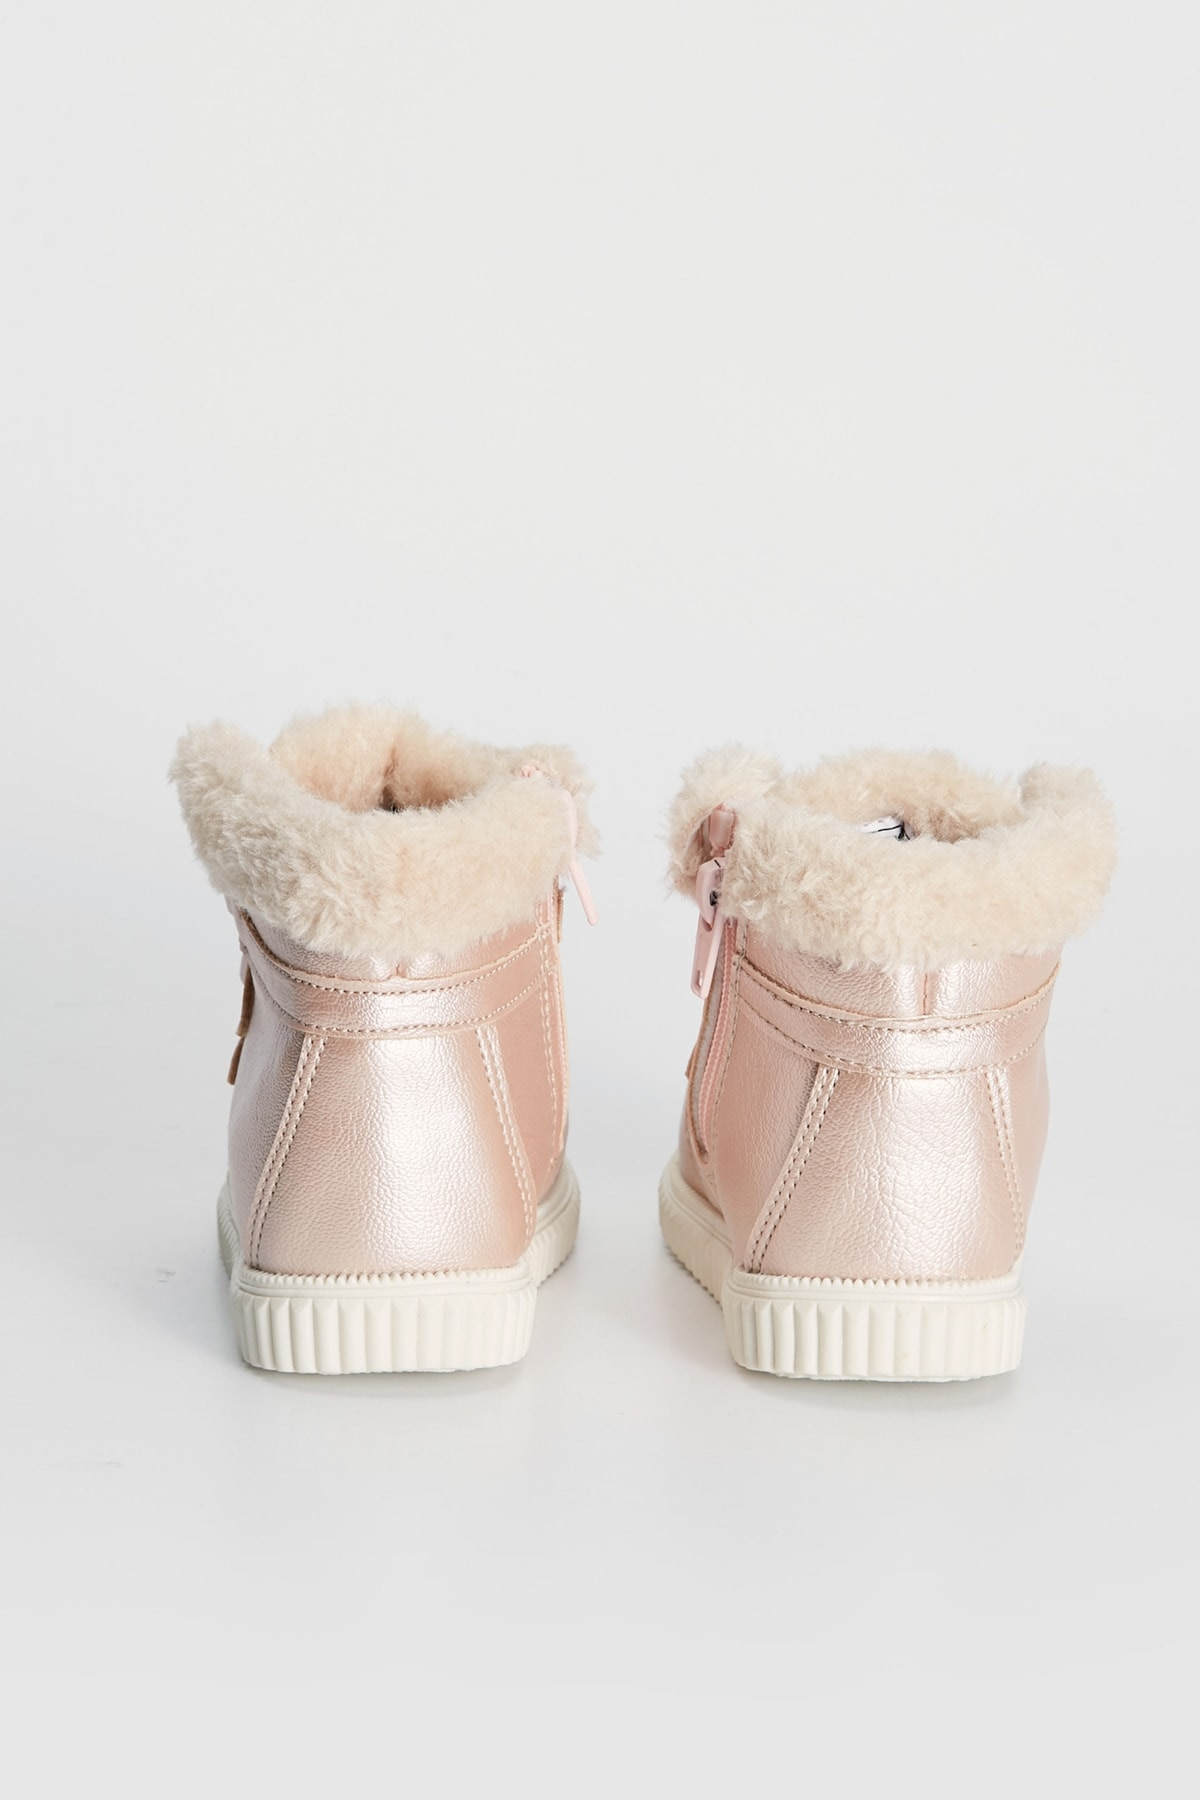 New Winter Kids Snow boots Keep Warm Girls School Girls Pink Plush Thickening Raining Boots 1-3-8-15 years old Free Shipping enlarge